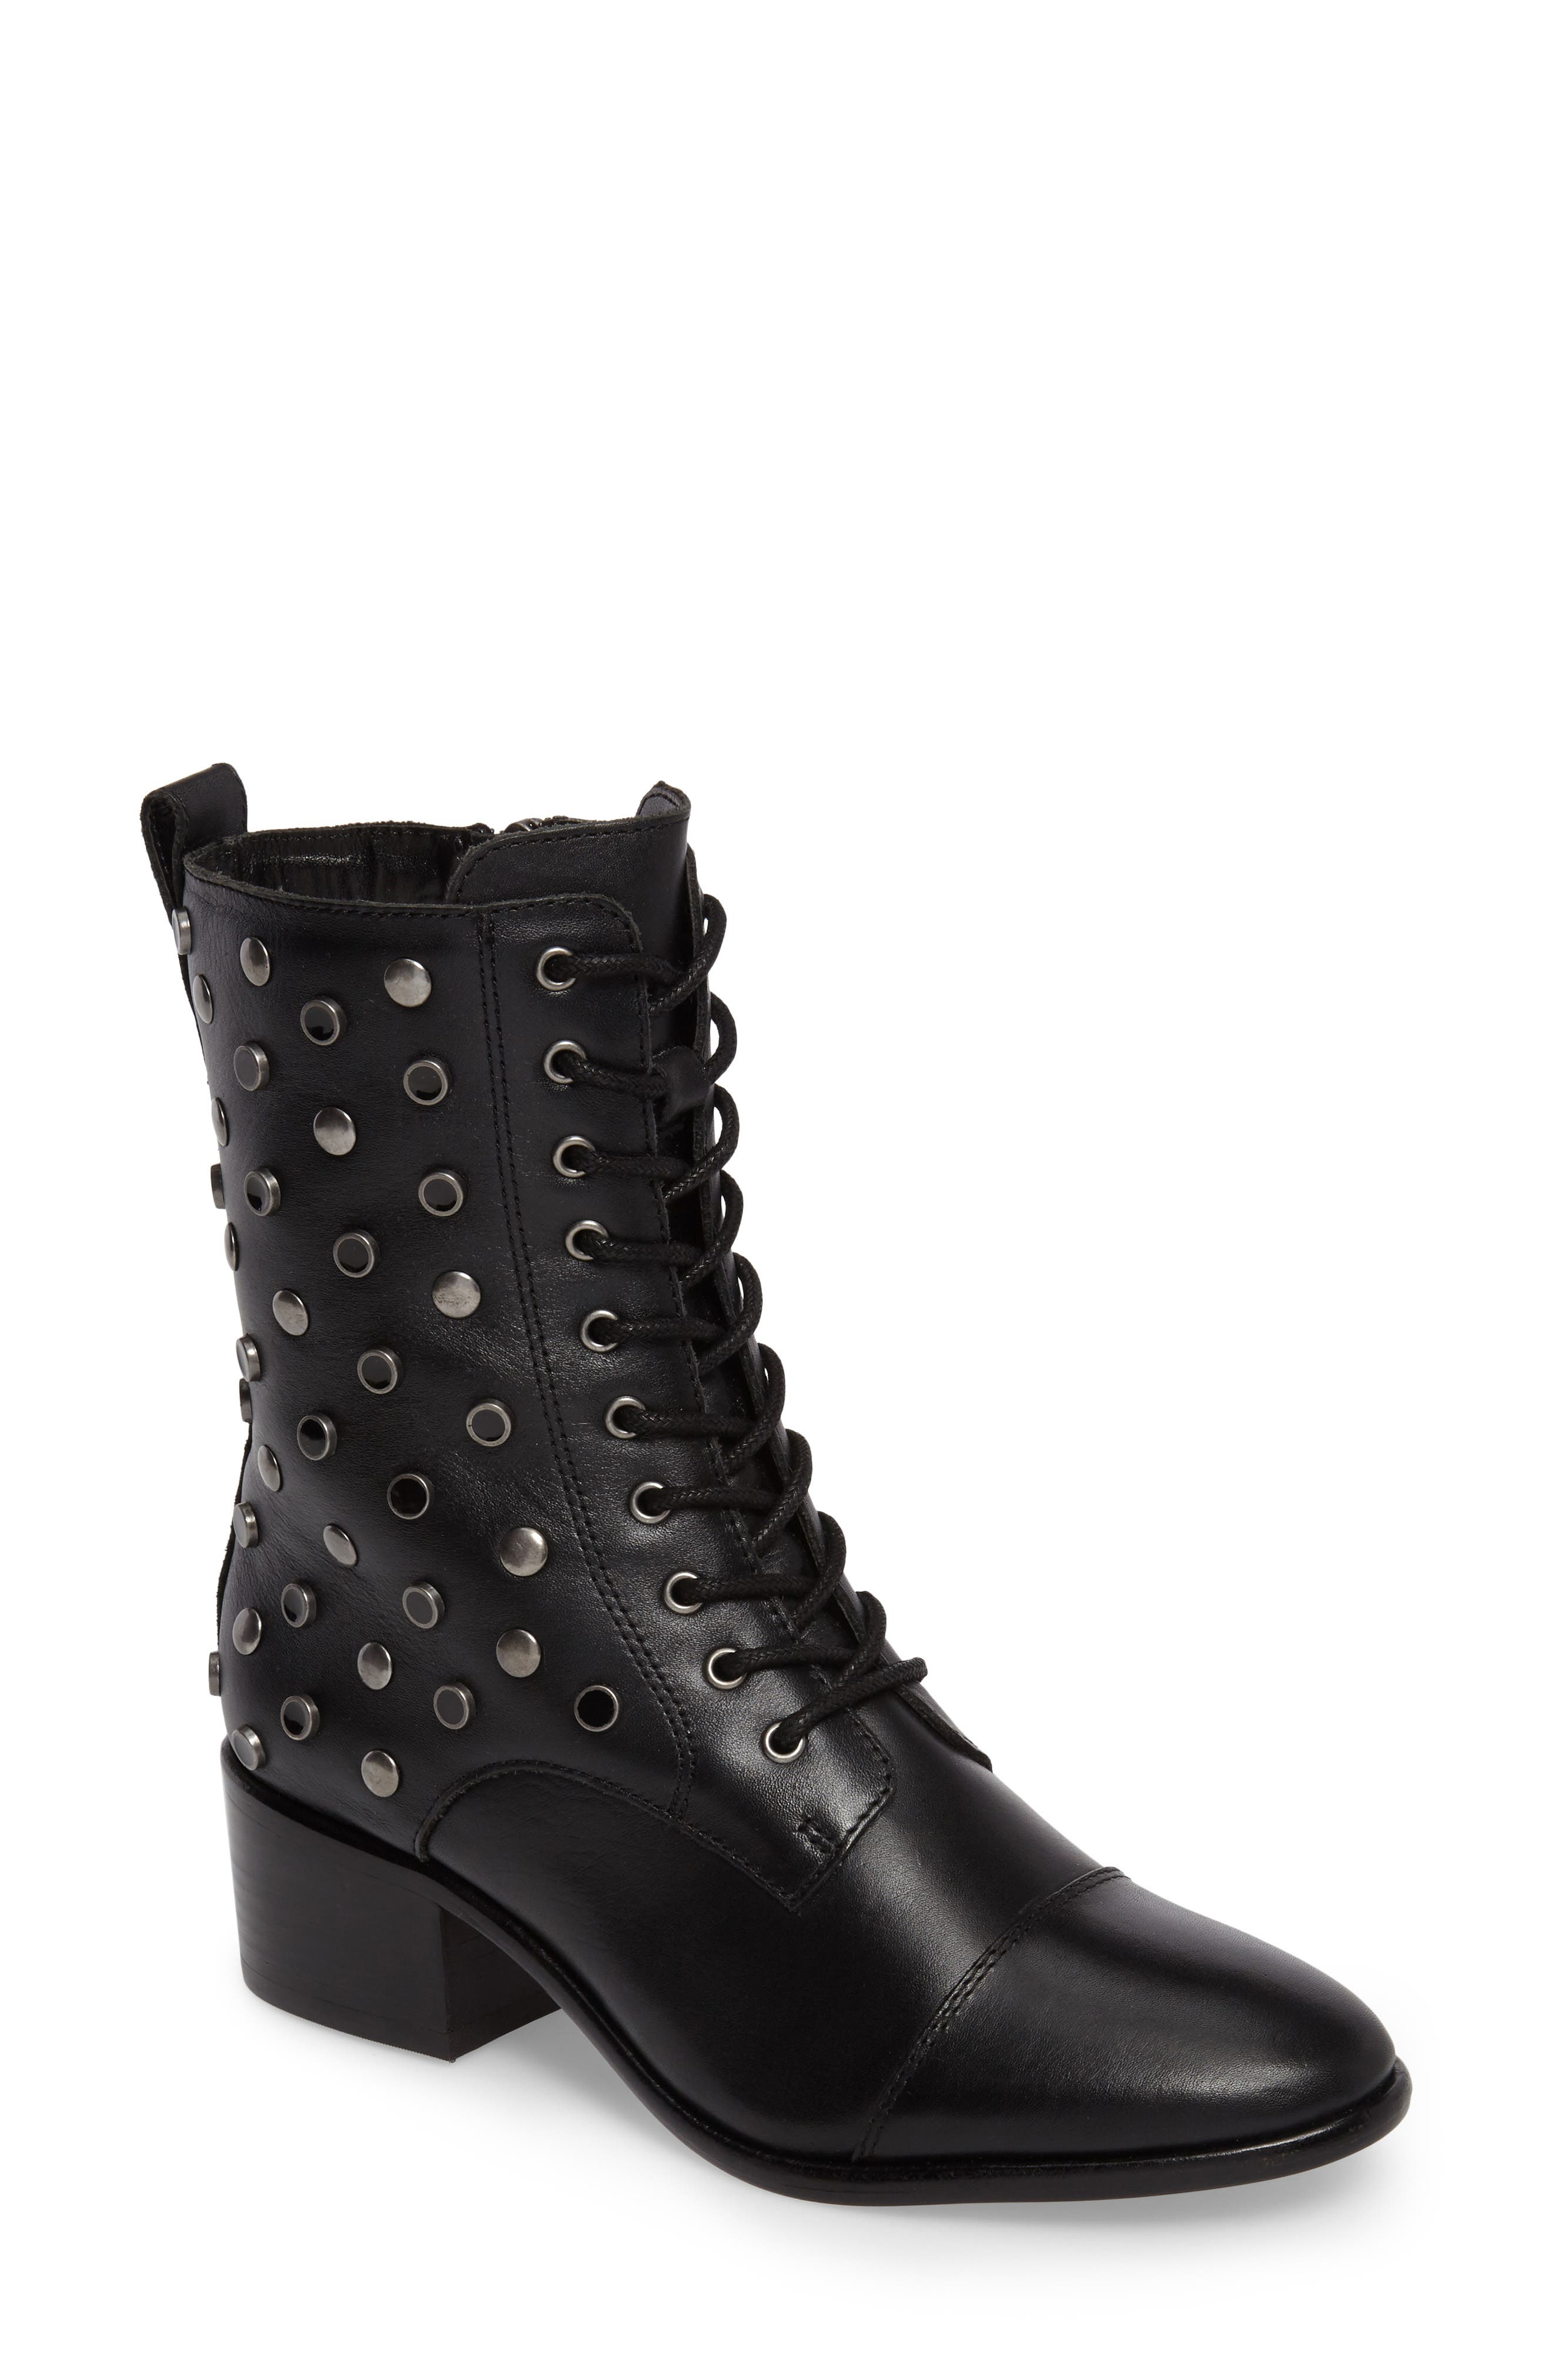 M4D3 Grazie Embellished Water Resistant Boot,                             Main thumbnail 1, color,                             001